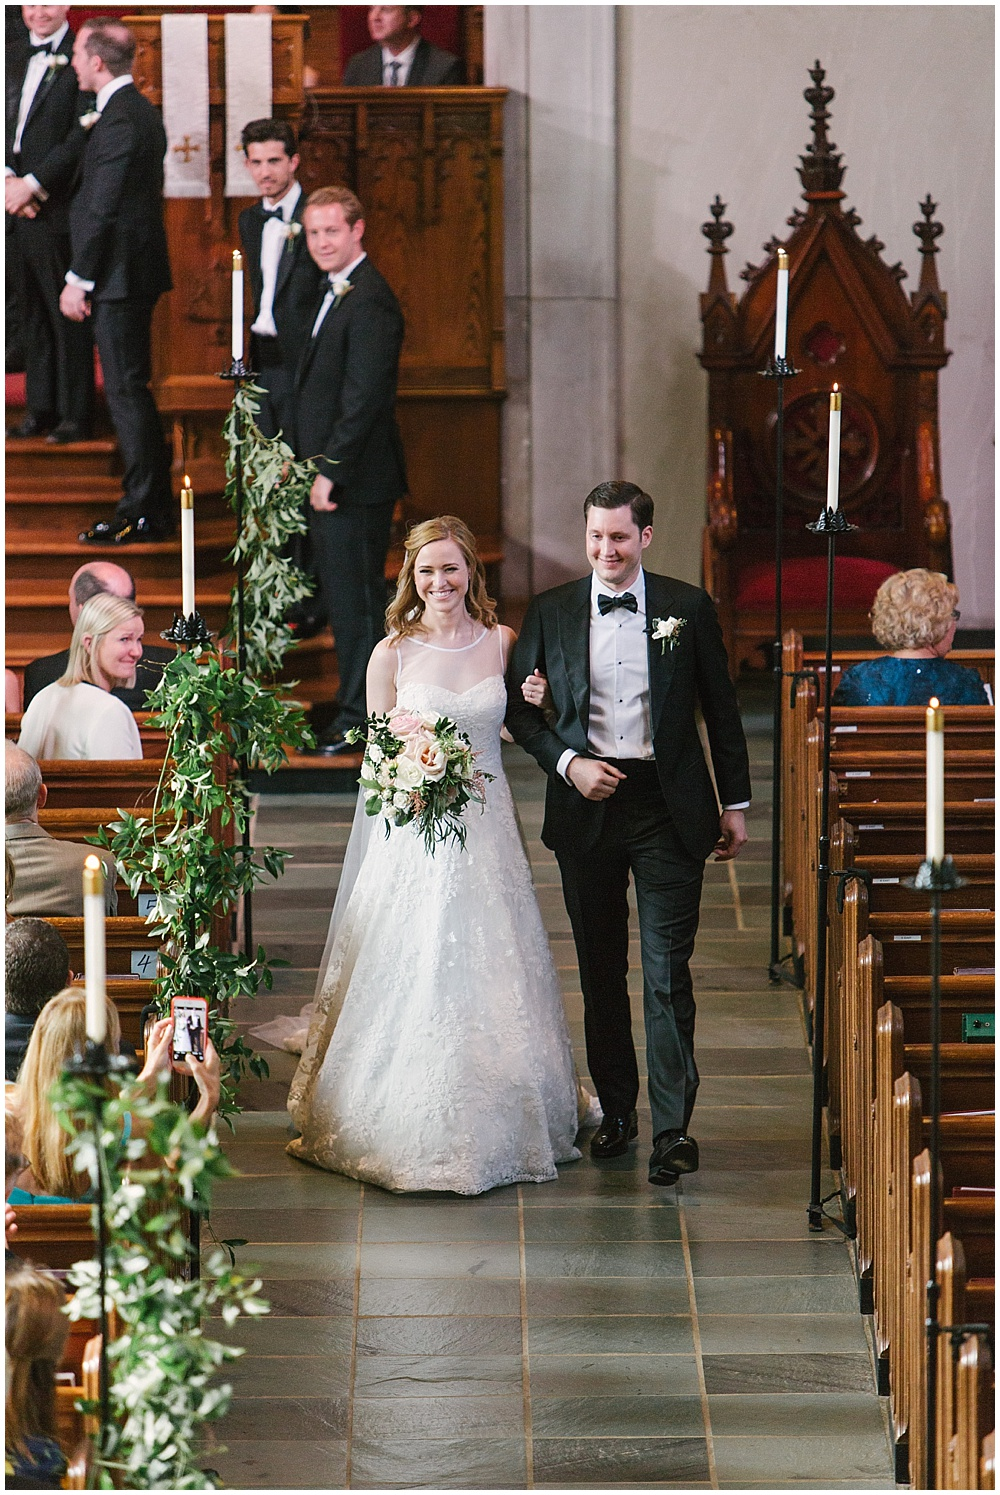 Second Presbyterian Church; bride and groom; Navy + blush wedding; Scottish Rite Cathedral| Traci & Troy Photography and Jessica Dum Wedding Coordination